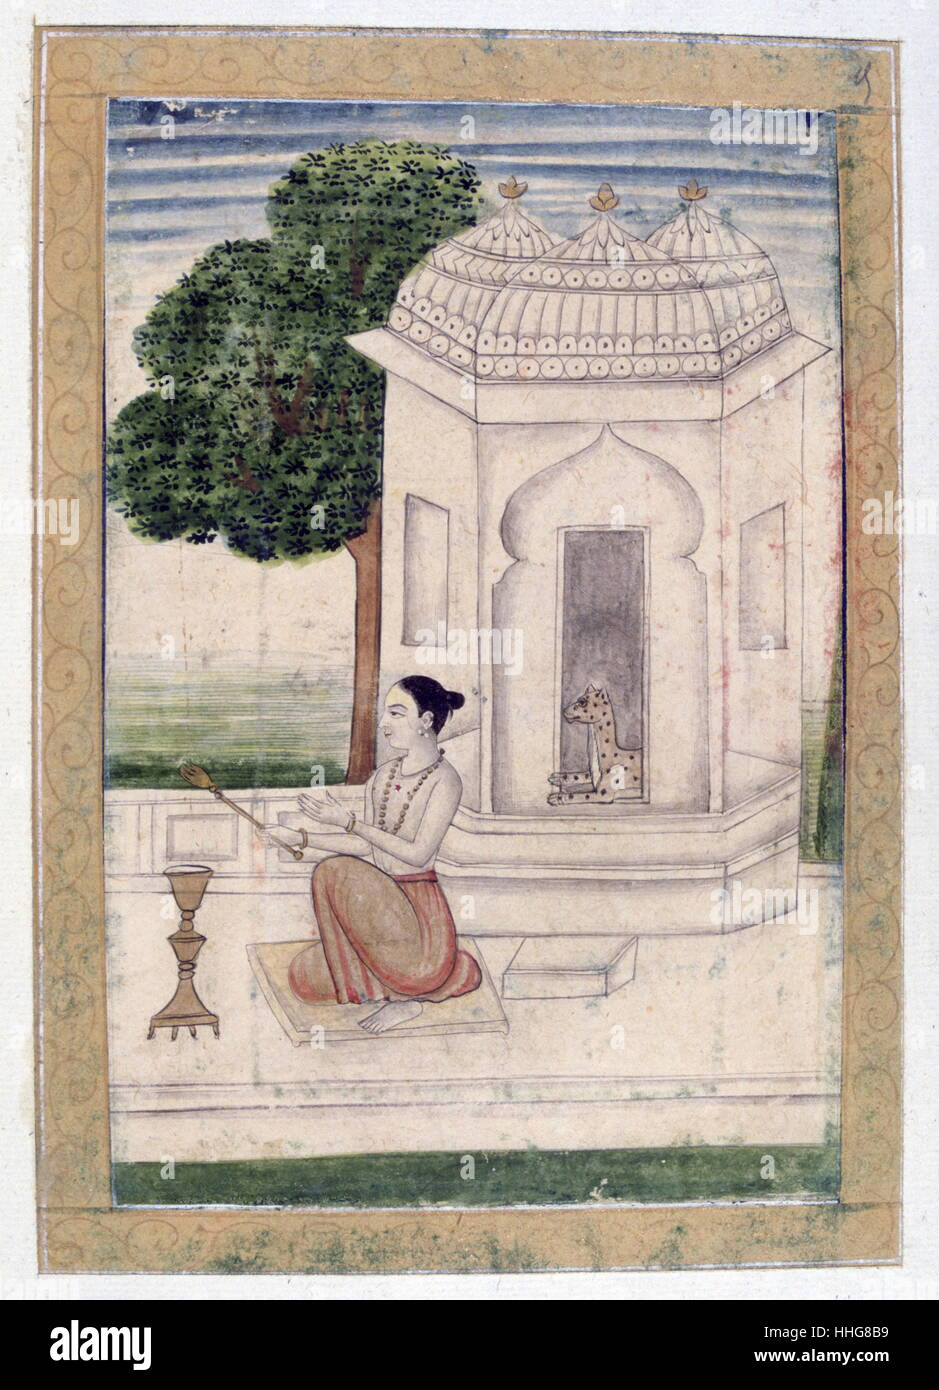 Indian Mughal miniature depicting a young ascetic in front of a pavilion guarded by a leopard. - Stock Image